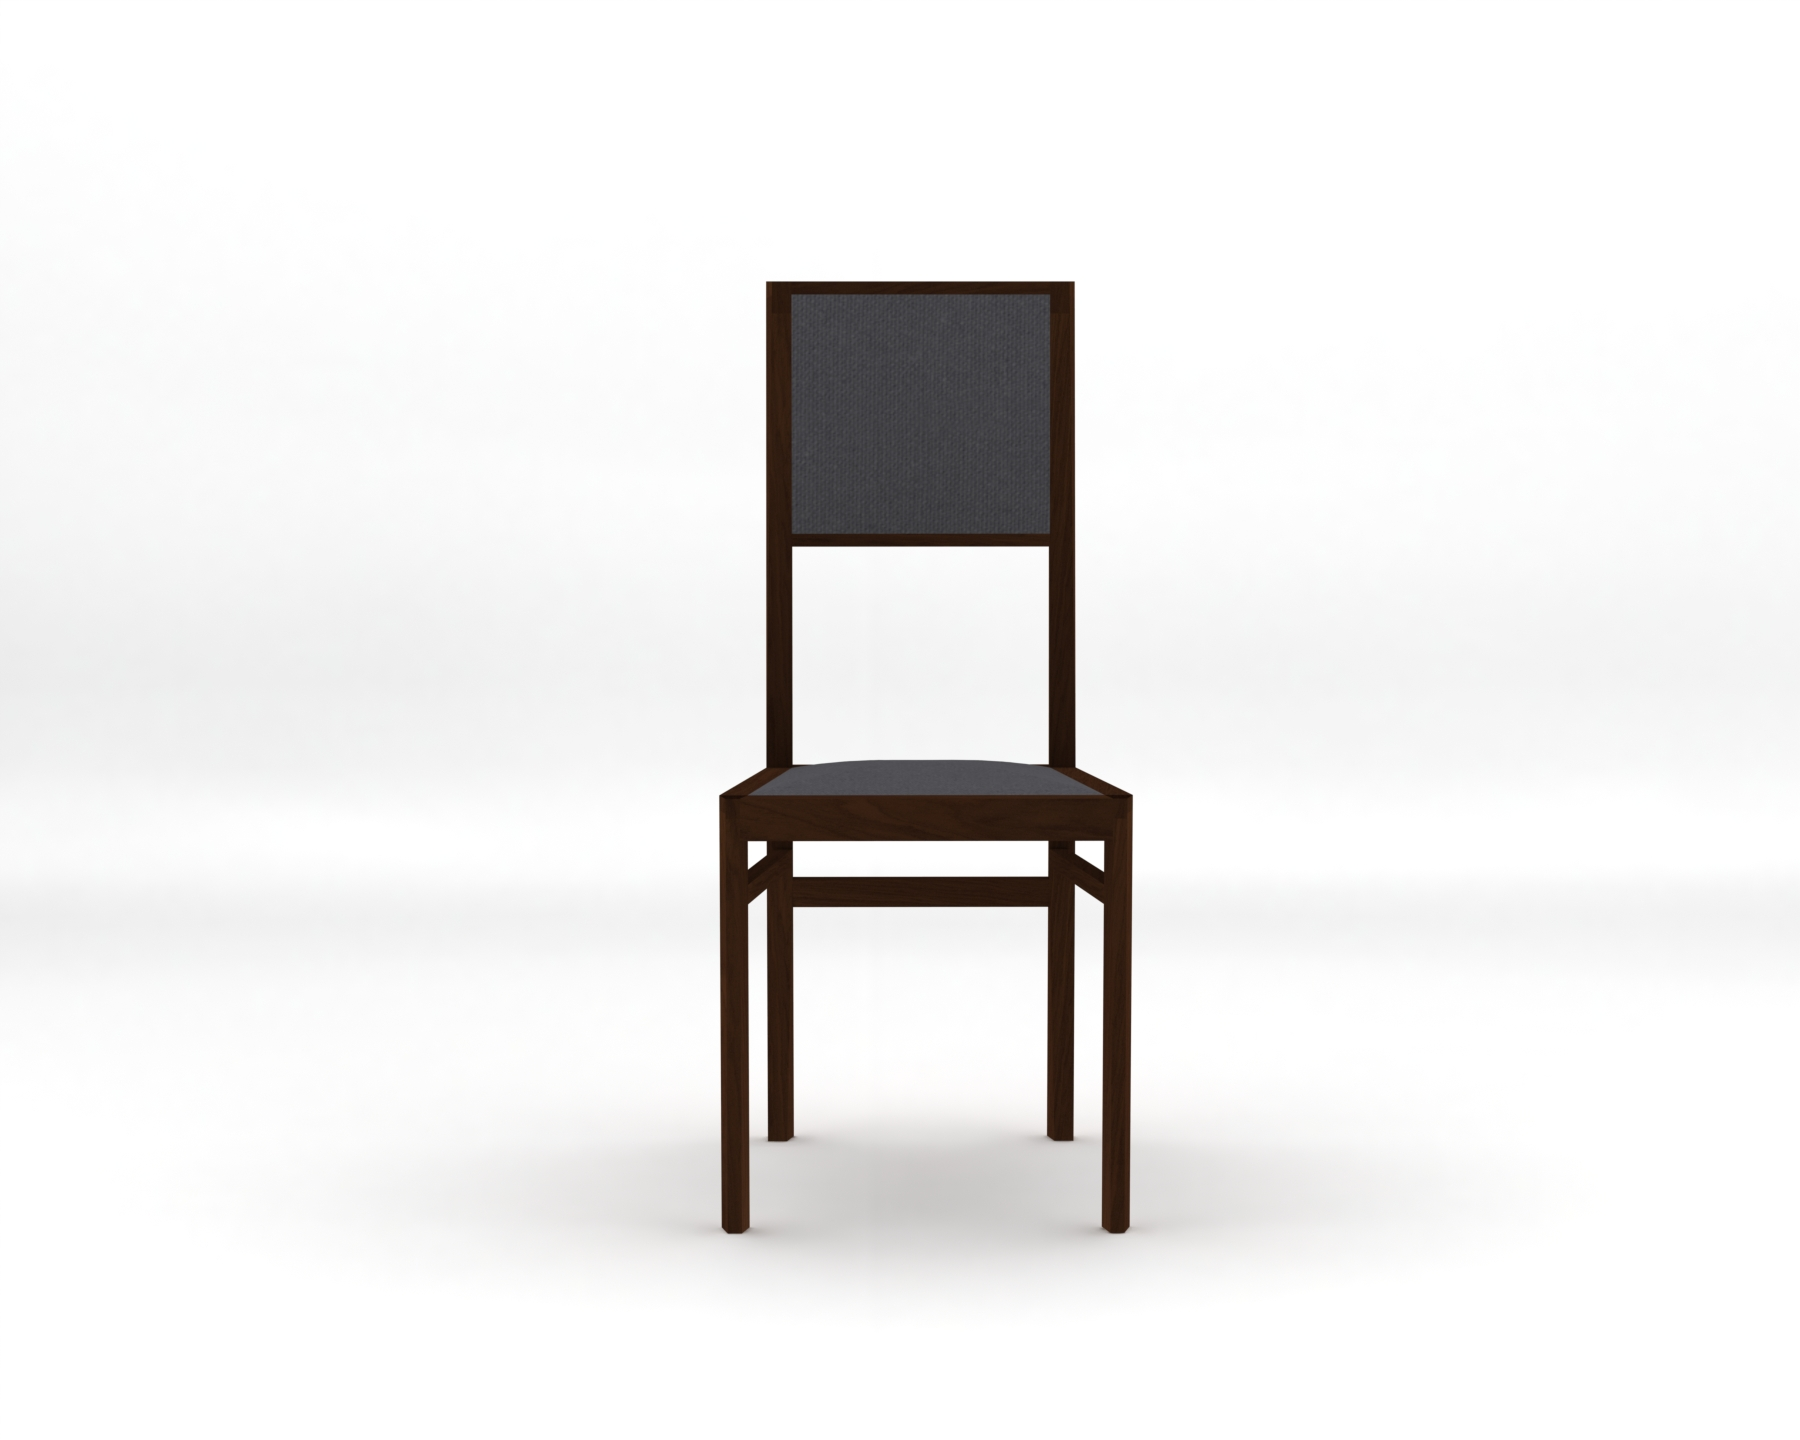 chair_01_front.JPG